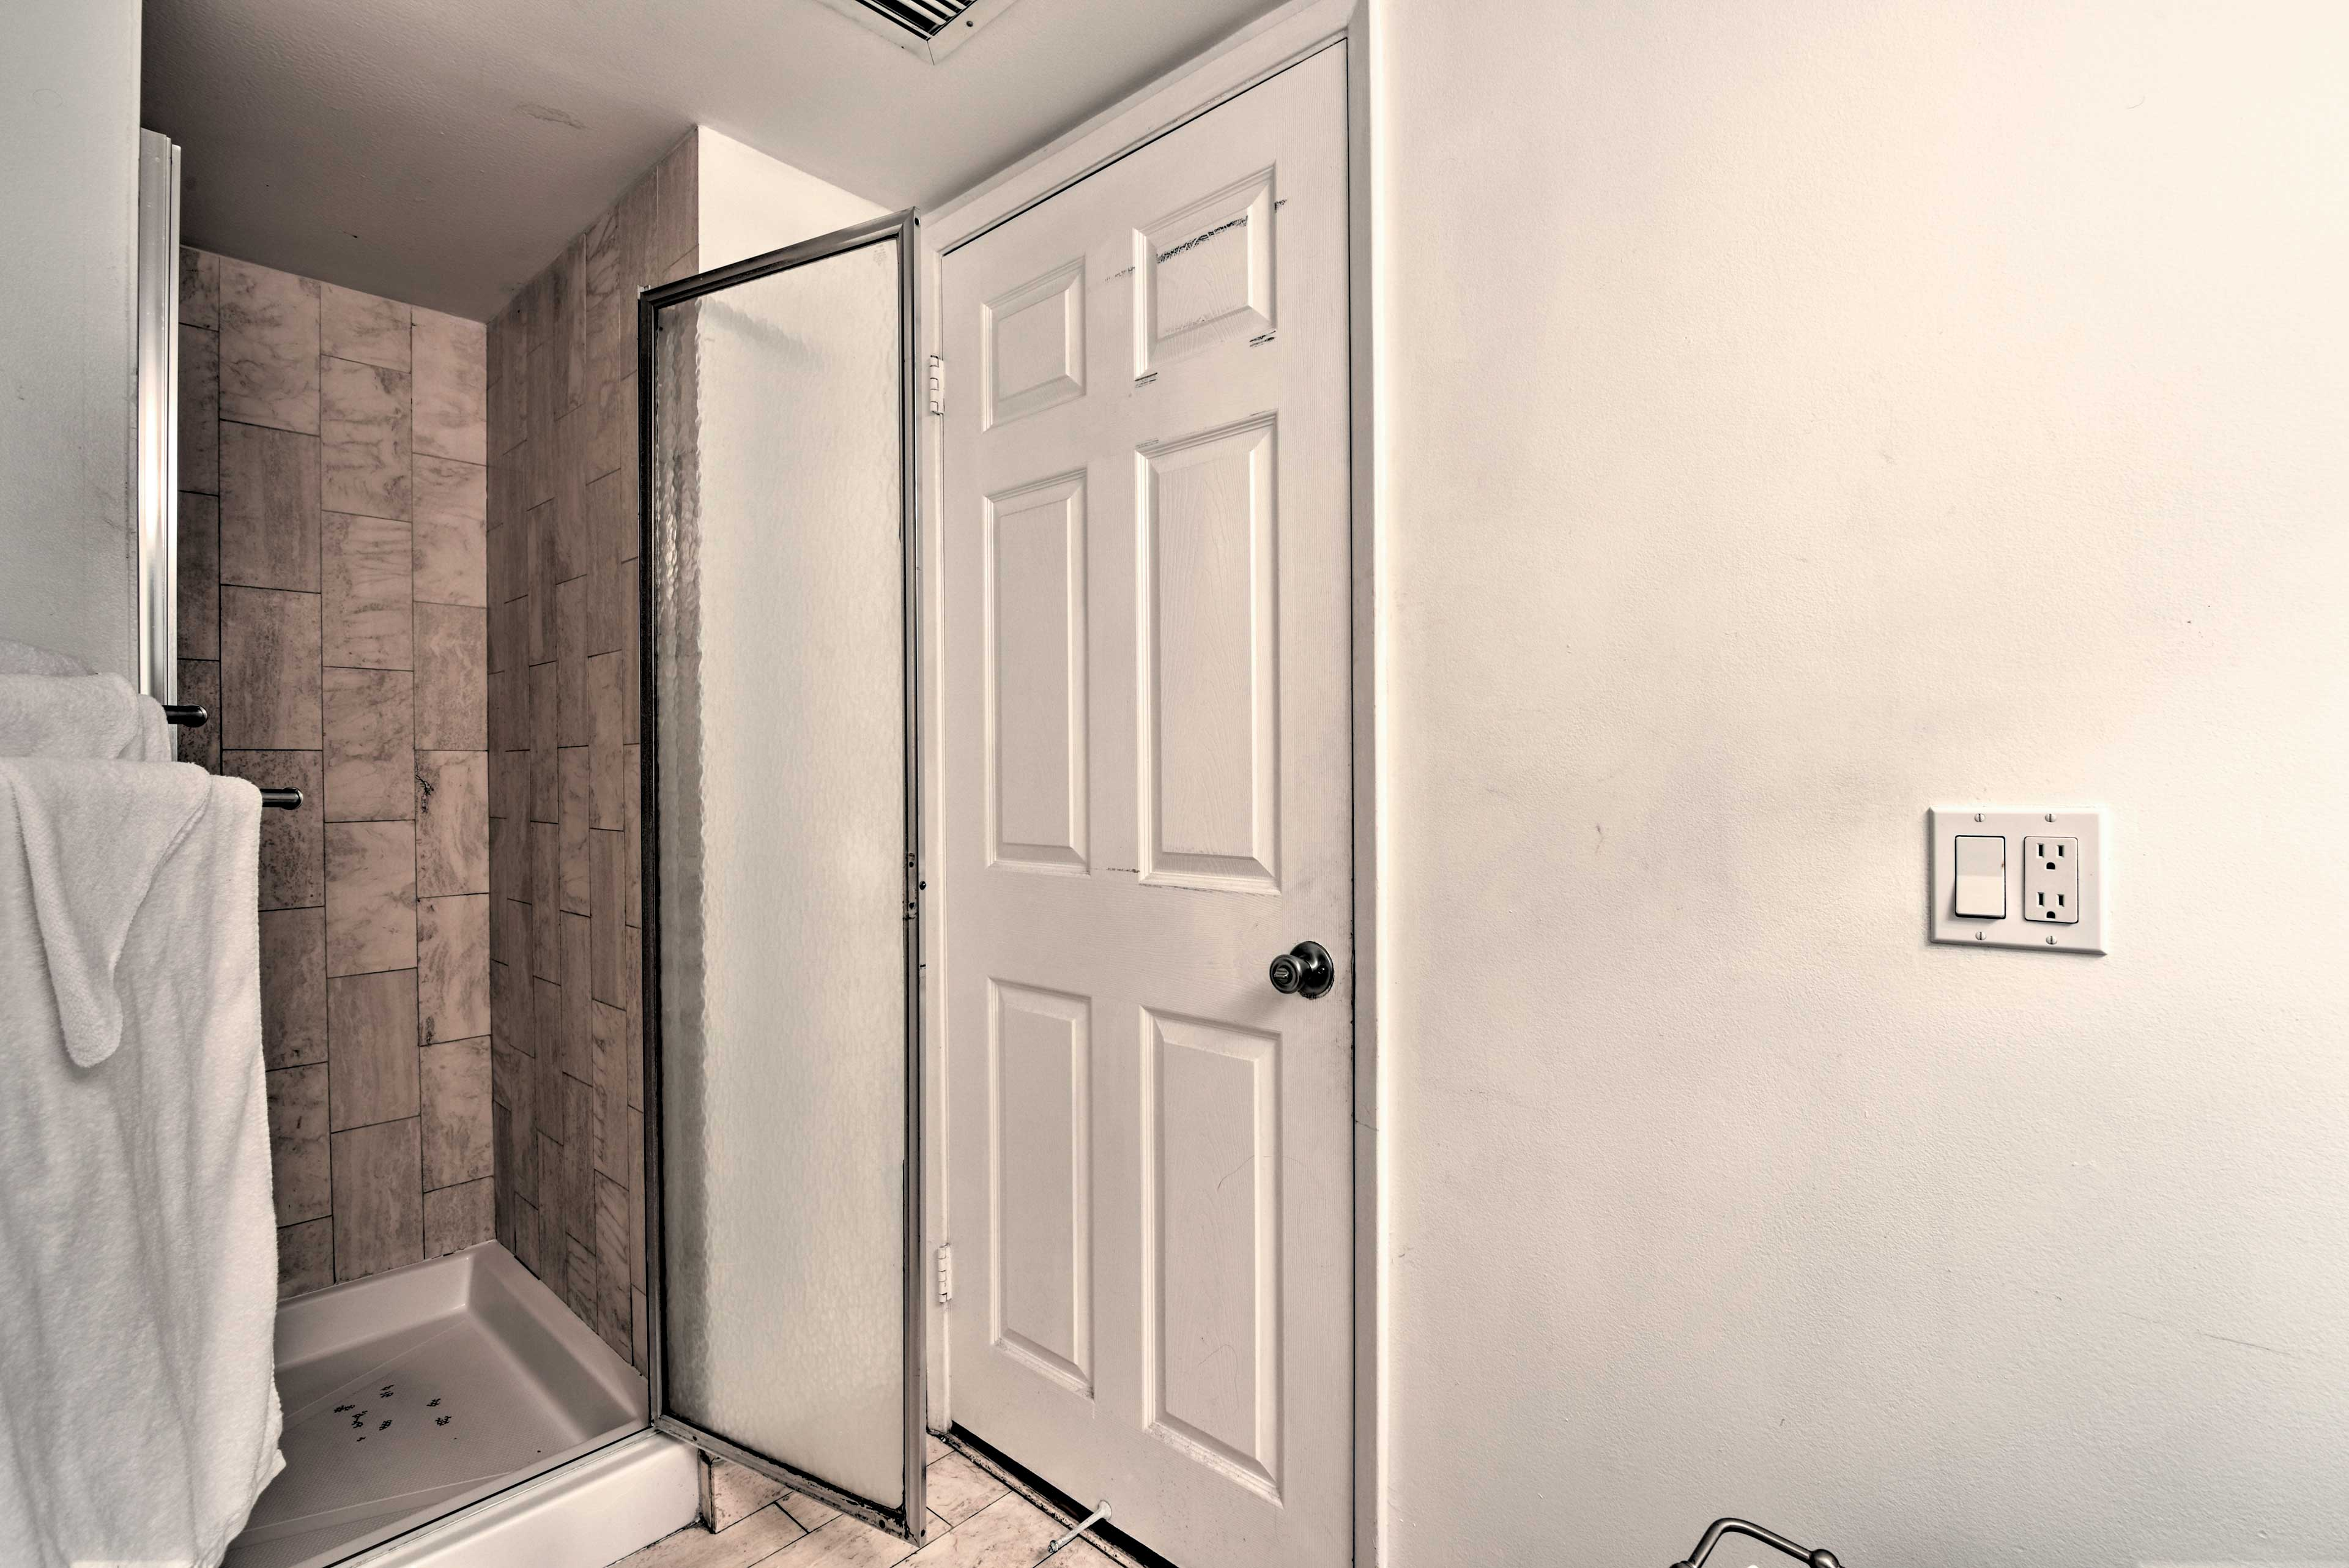 Rinse off the saltwater in the tile-lined stand-up shower.